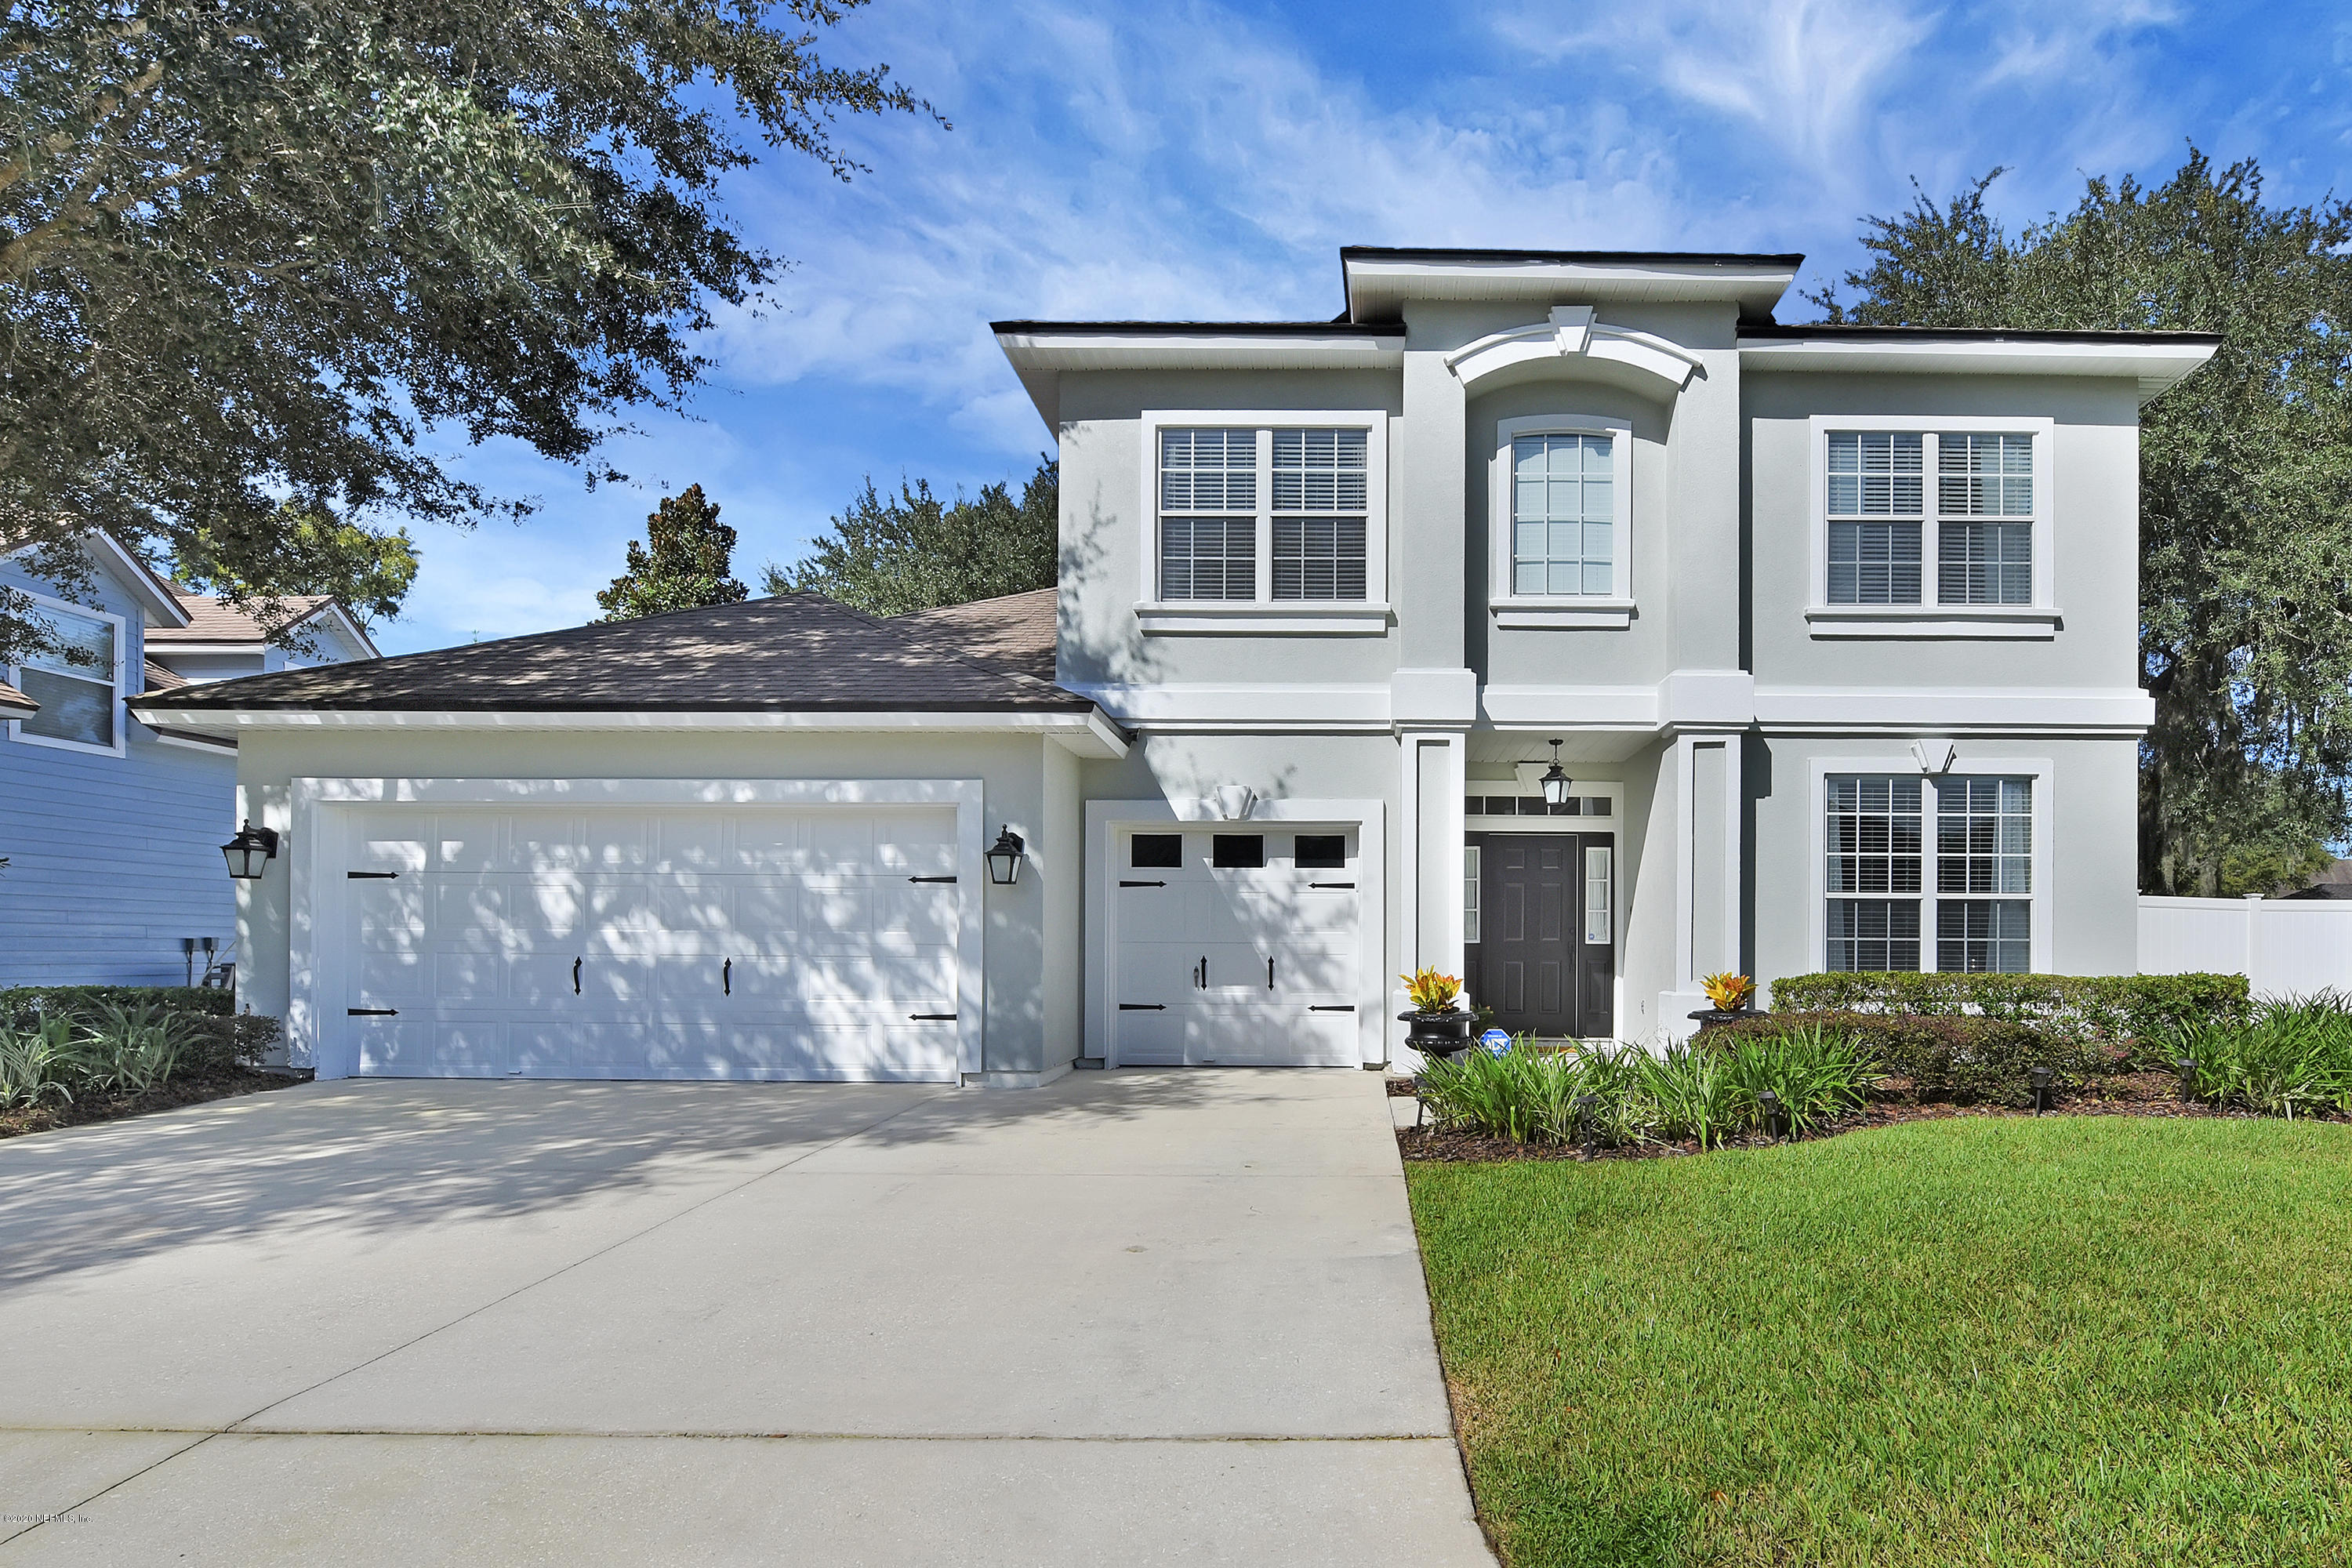 591 CHESTWOOD CHASE, ORANGE PARK, FLORIDA 32065, 5 Bedrooms Bedrooms, ,3 BathroomsBathrooms,Residential,For sale,CHESTWOOD CHASE,1078444